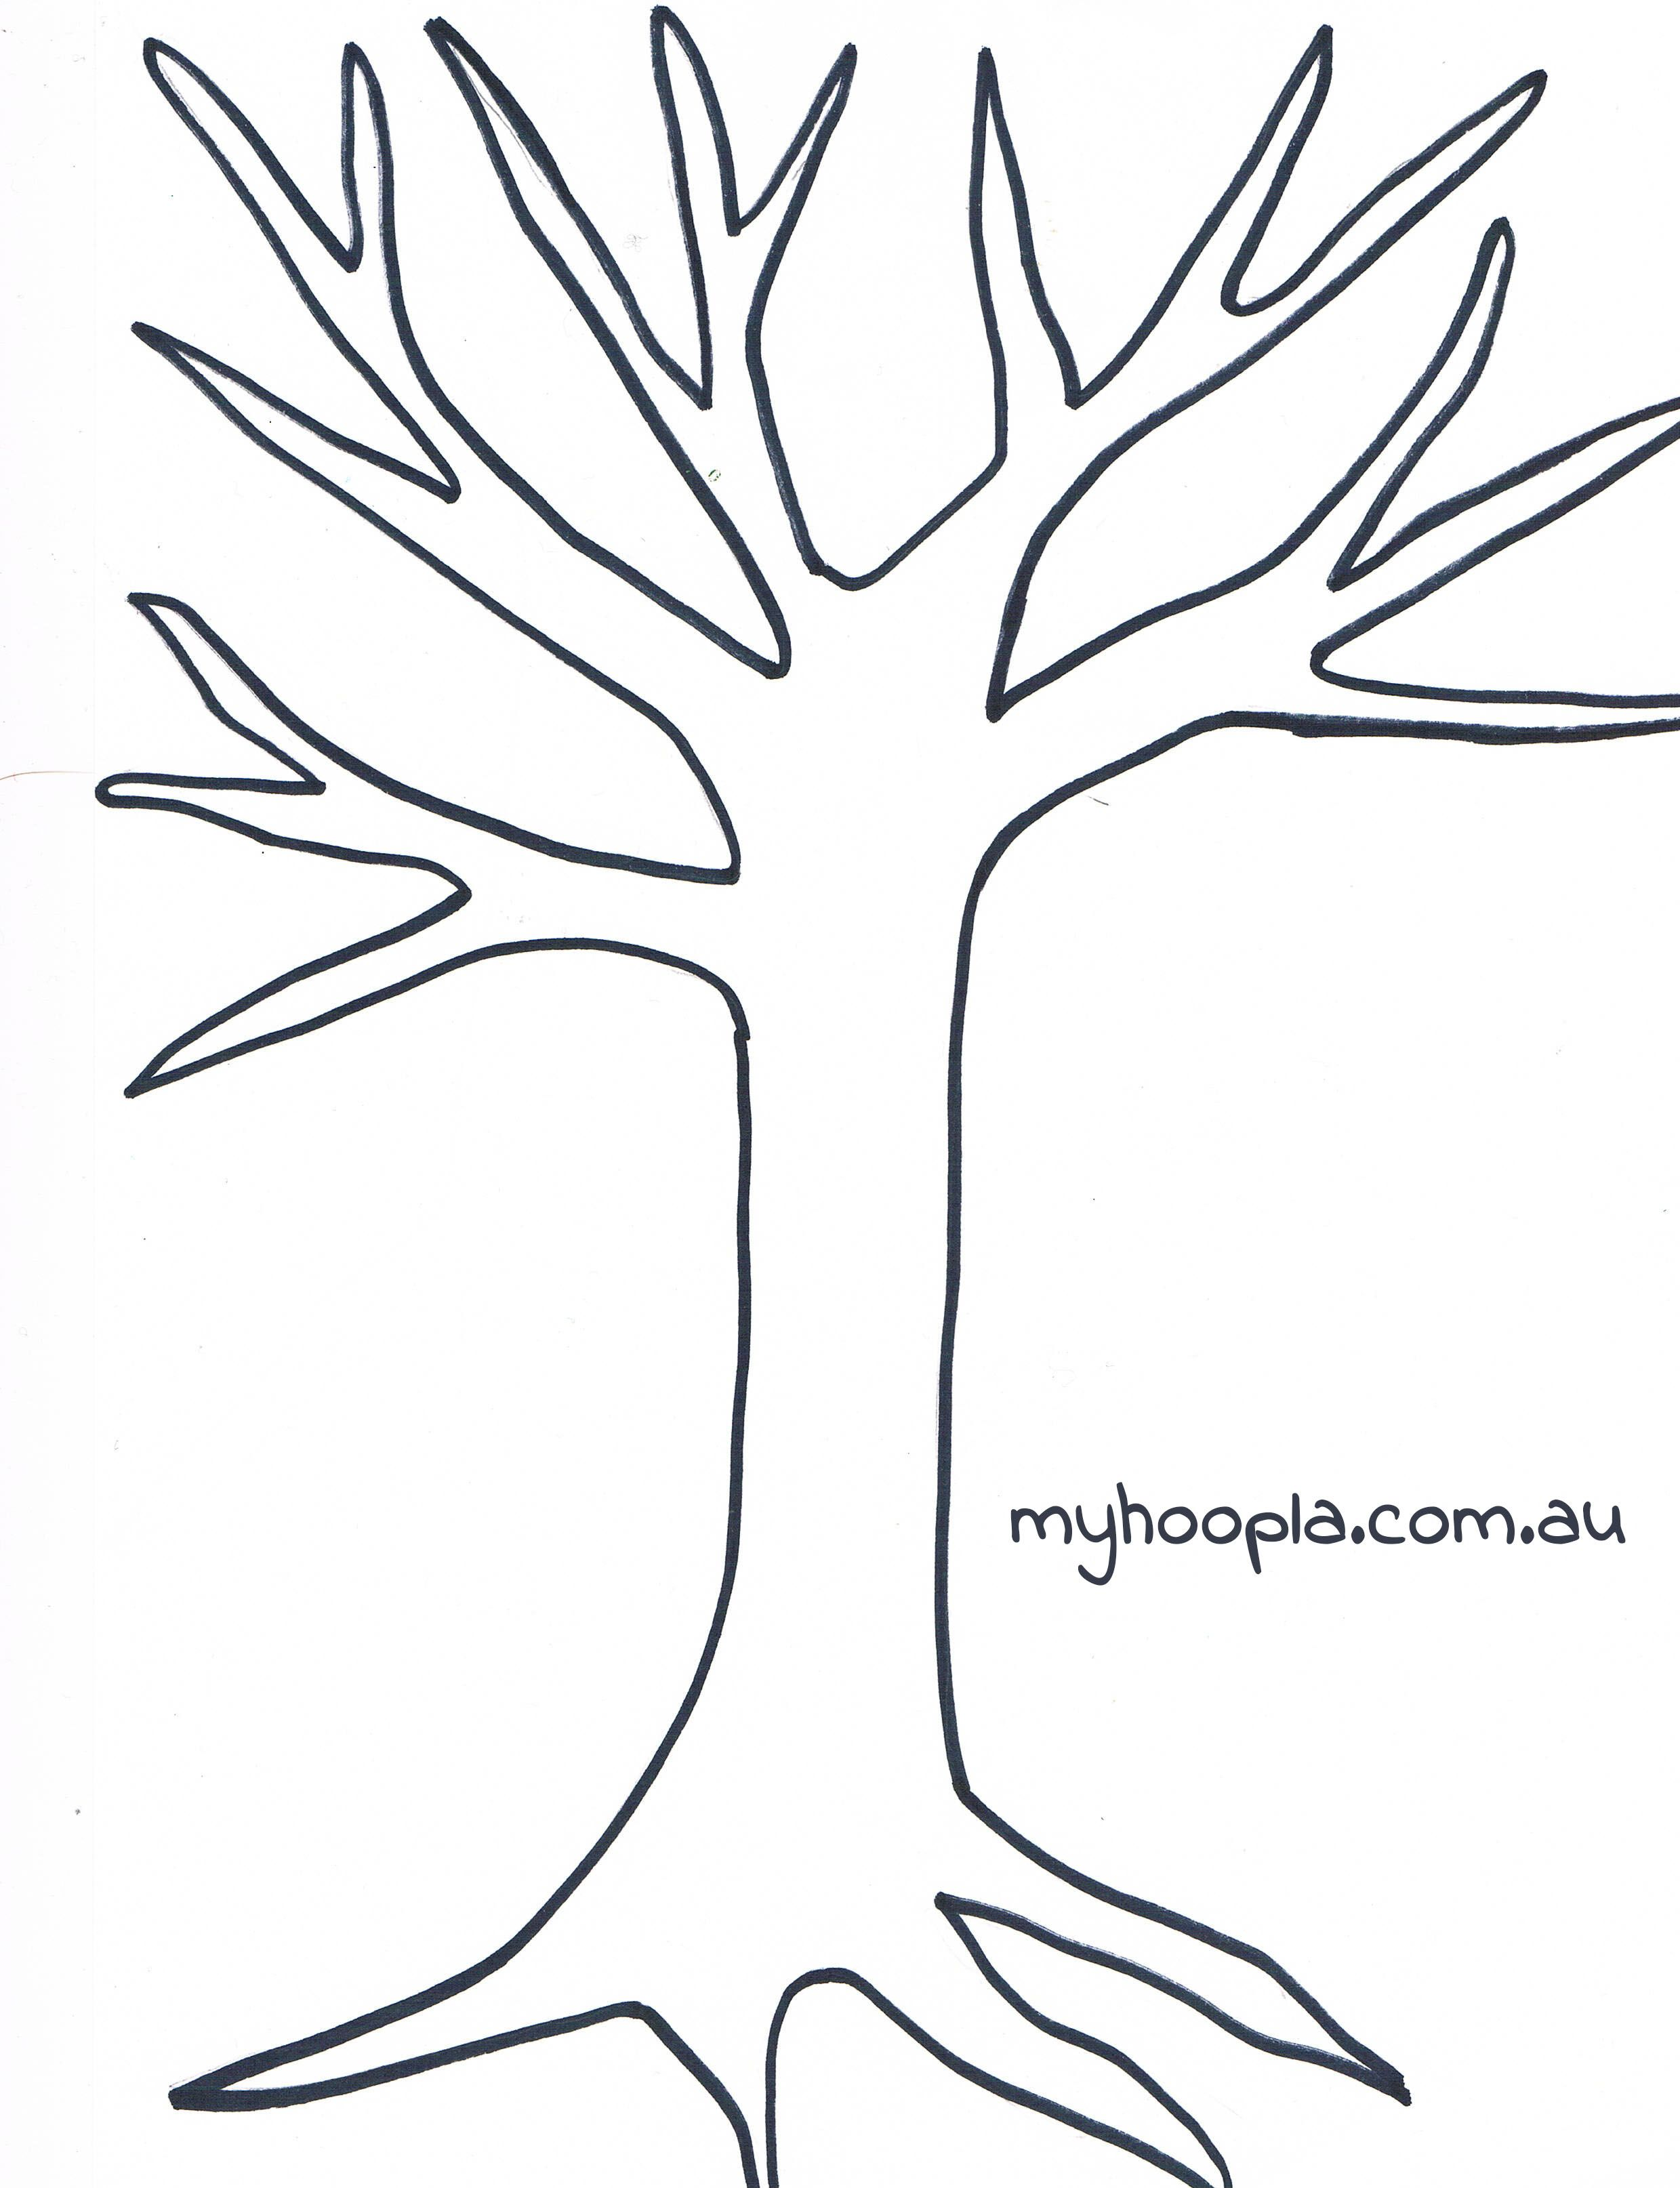 Preschool Tree Template F95ada8c0c8d36b Baf707a96be3